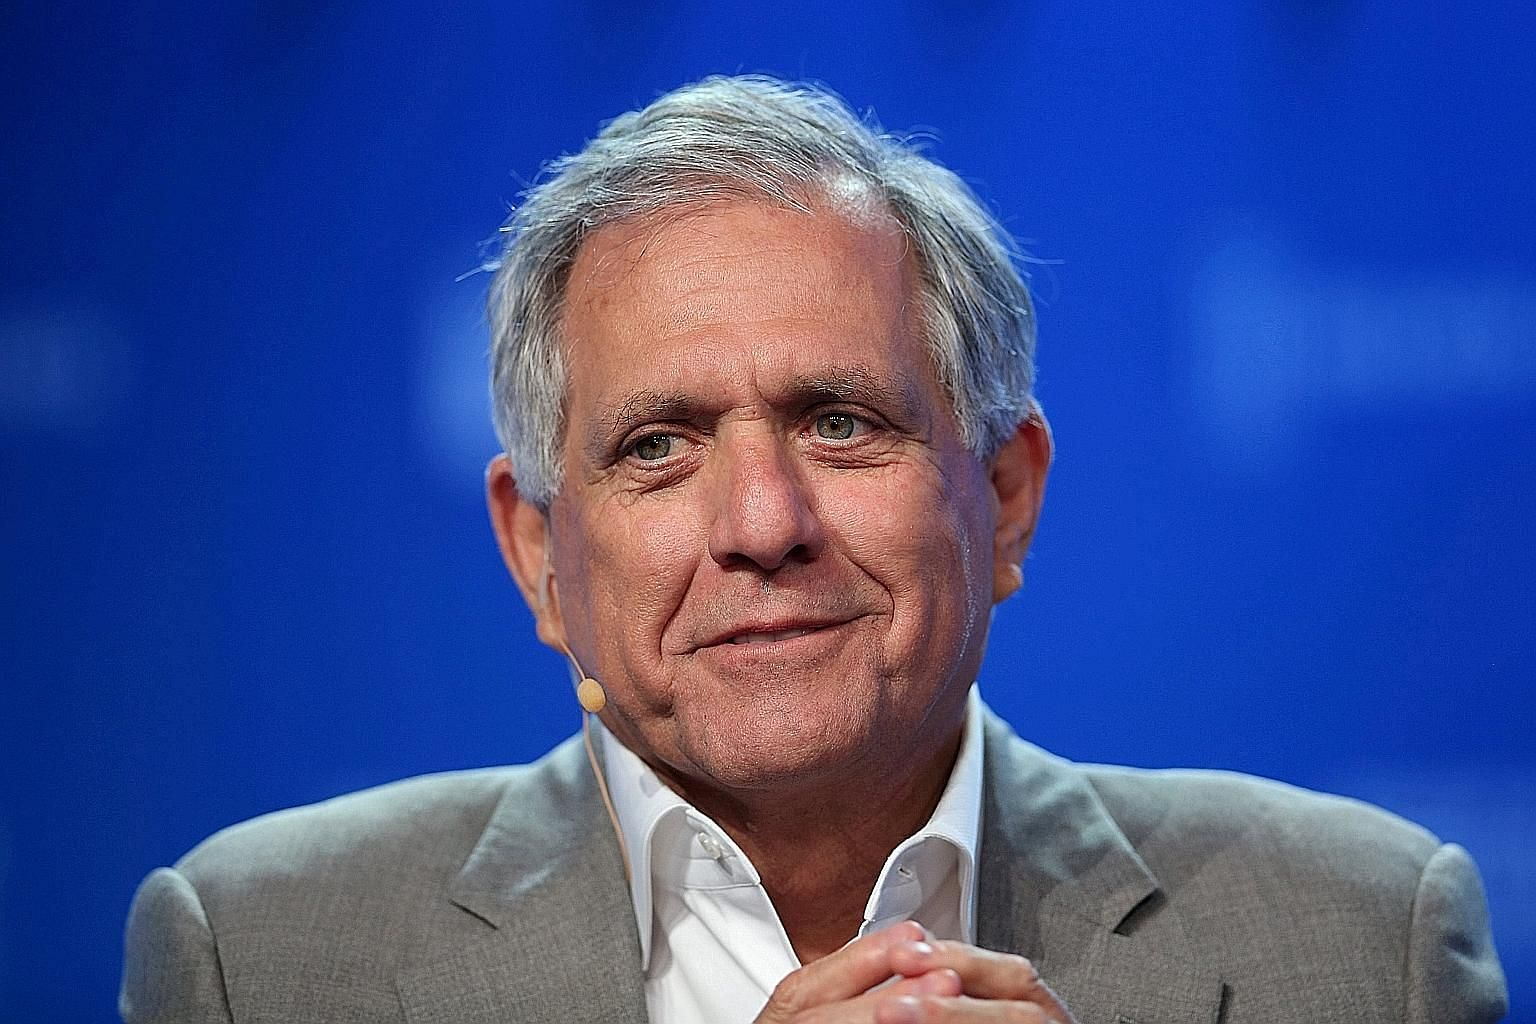 Mr Leslie Moonves stepped down on Sunday after The New Yorker magazine published another article in which six more women detailed claims of sexual harassment against him.